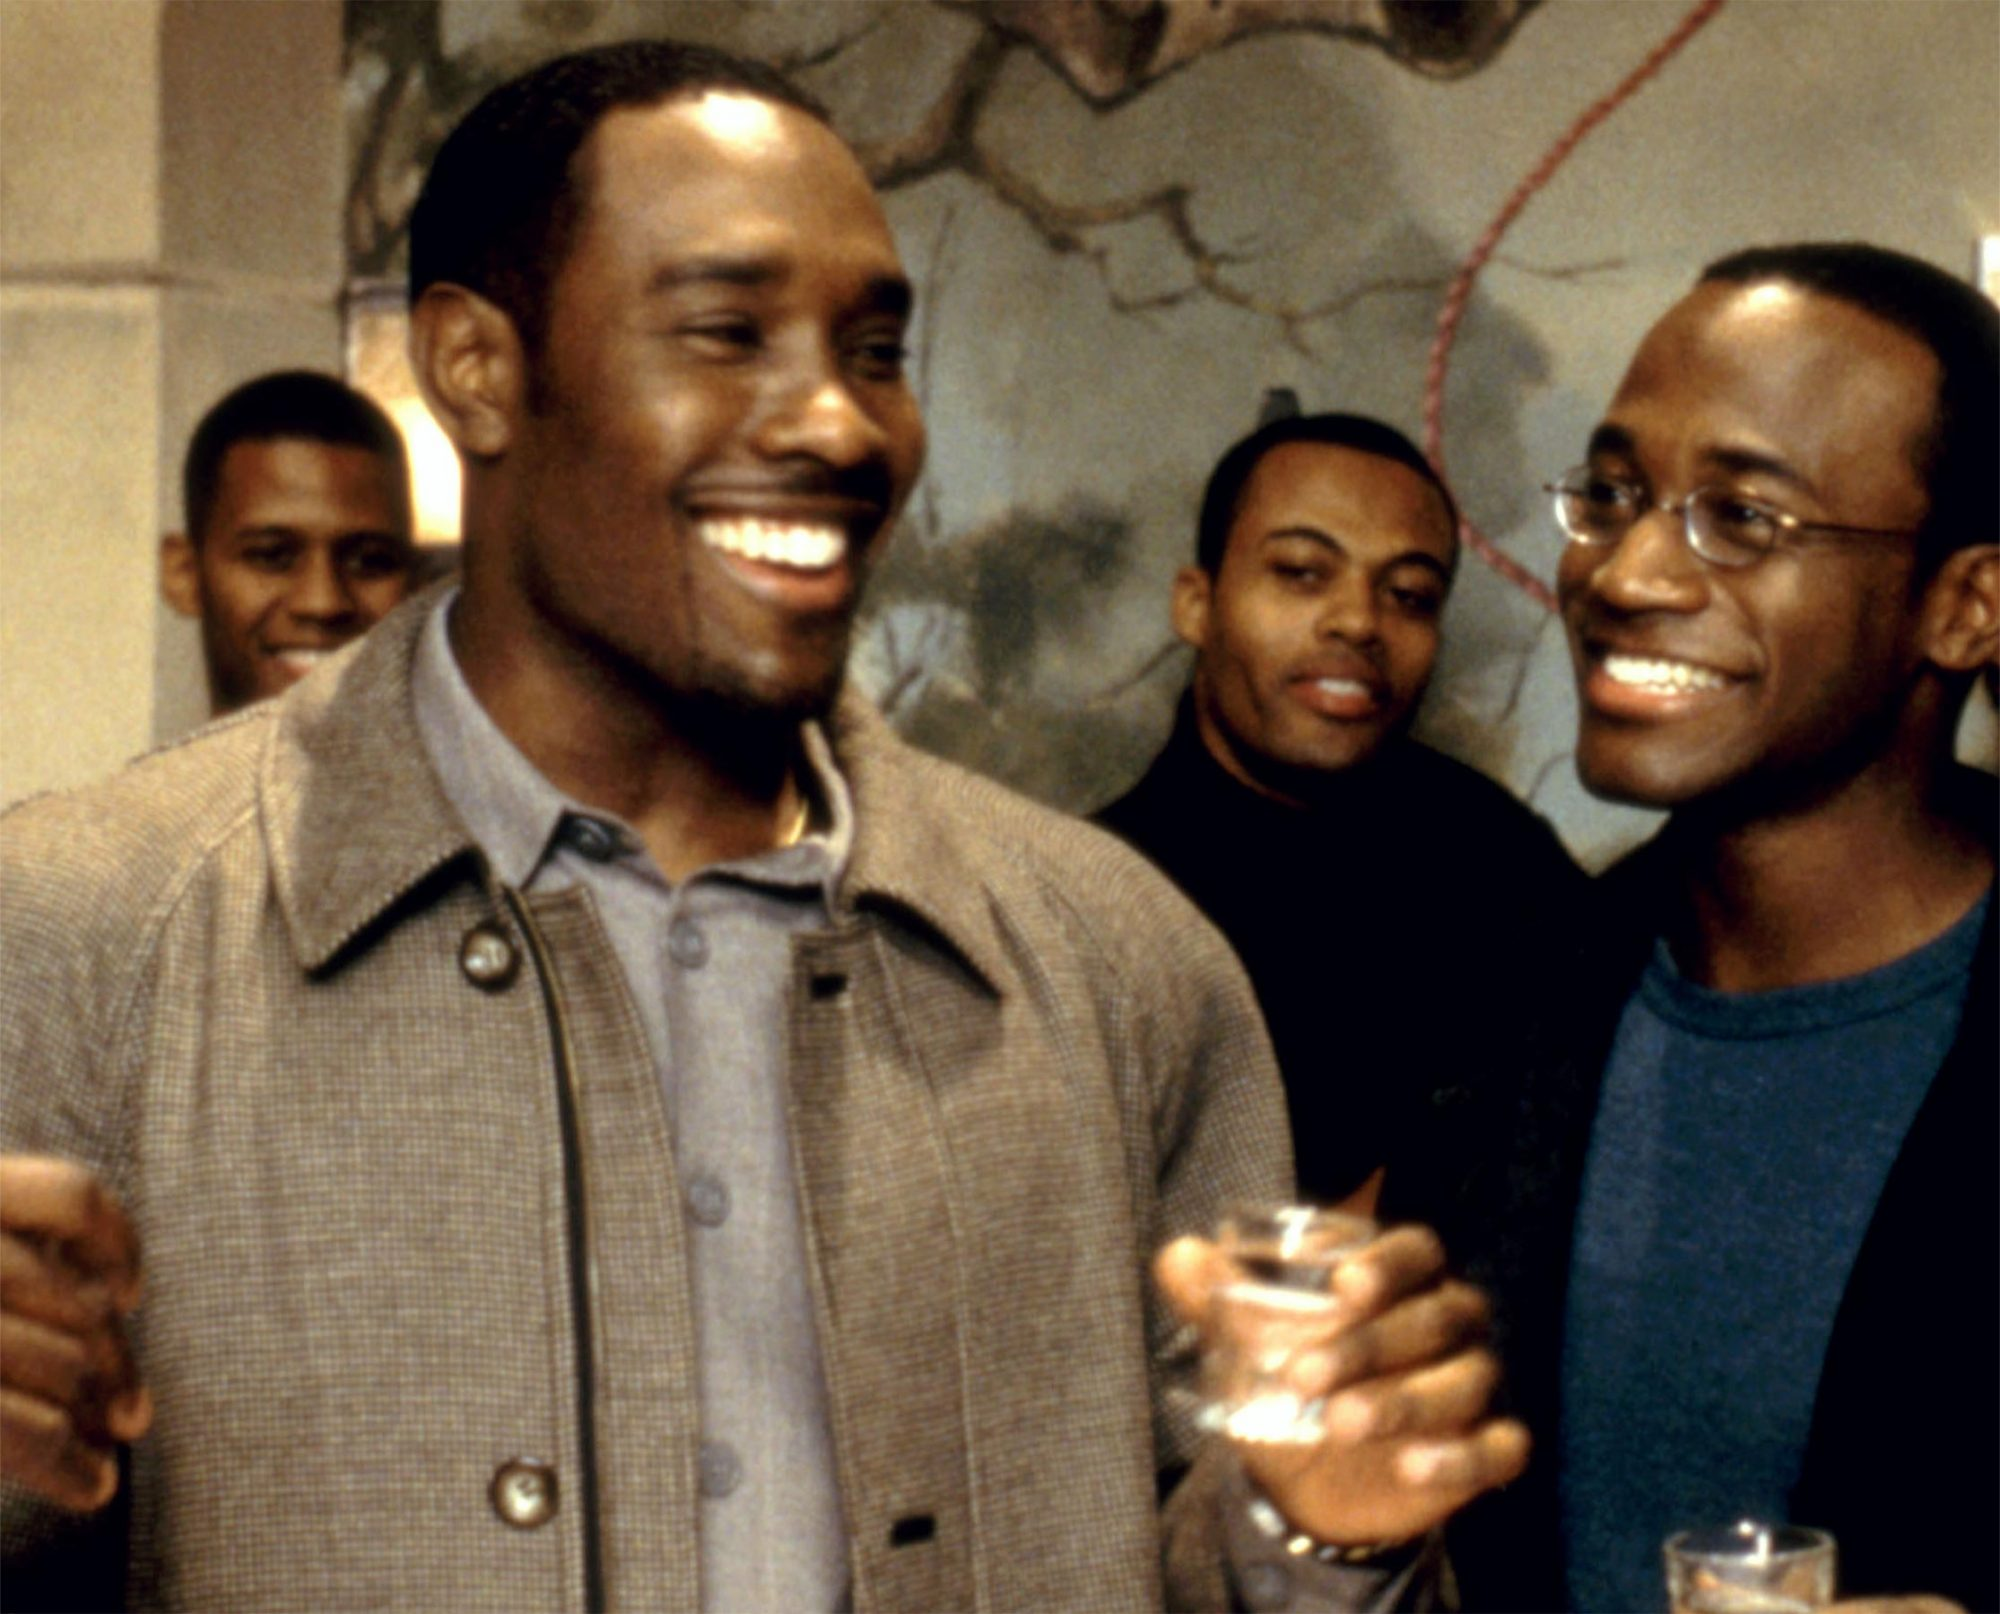 THE BEST MAN, Morris Chestnut, Taye Diggs, 1999, (c)Universal/courtesy Everett Collection